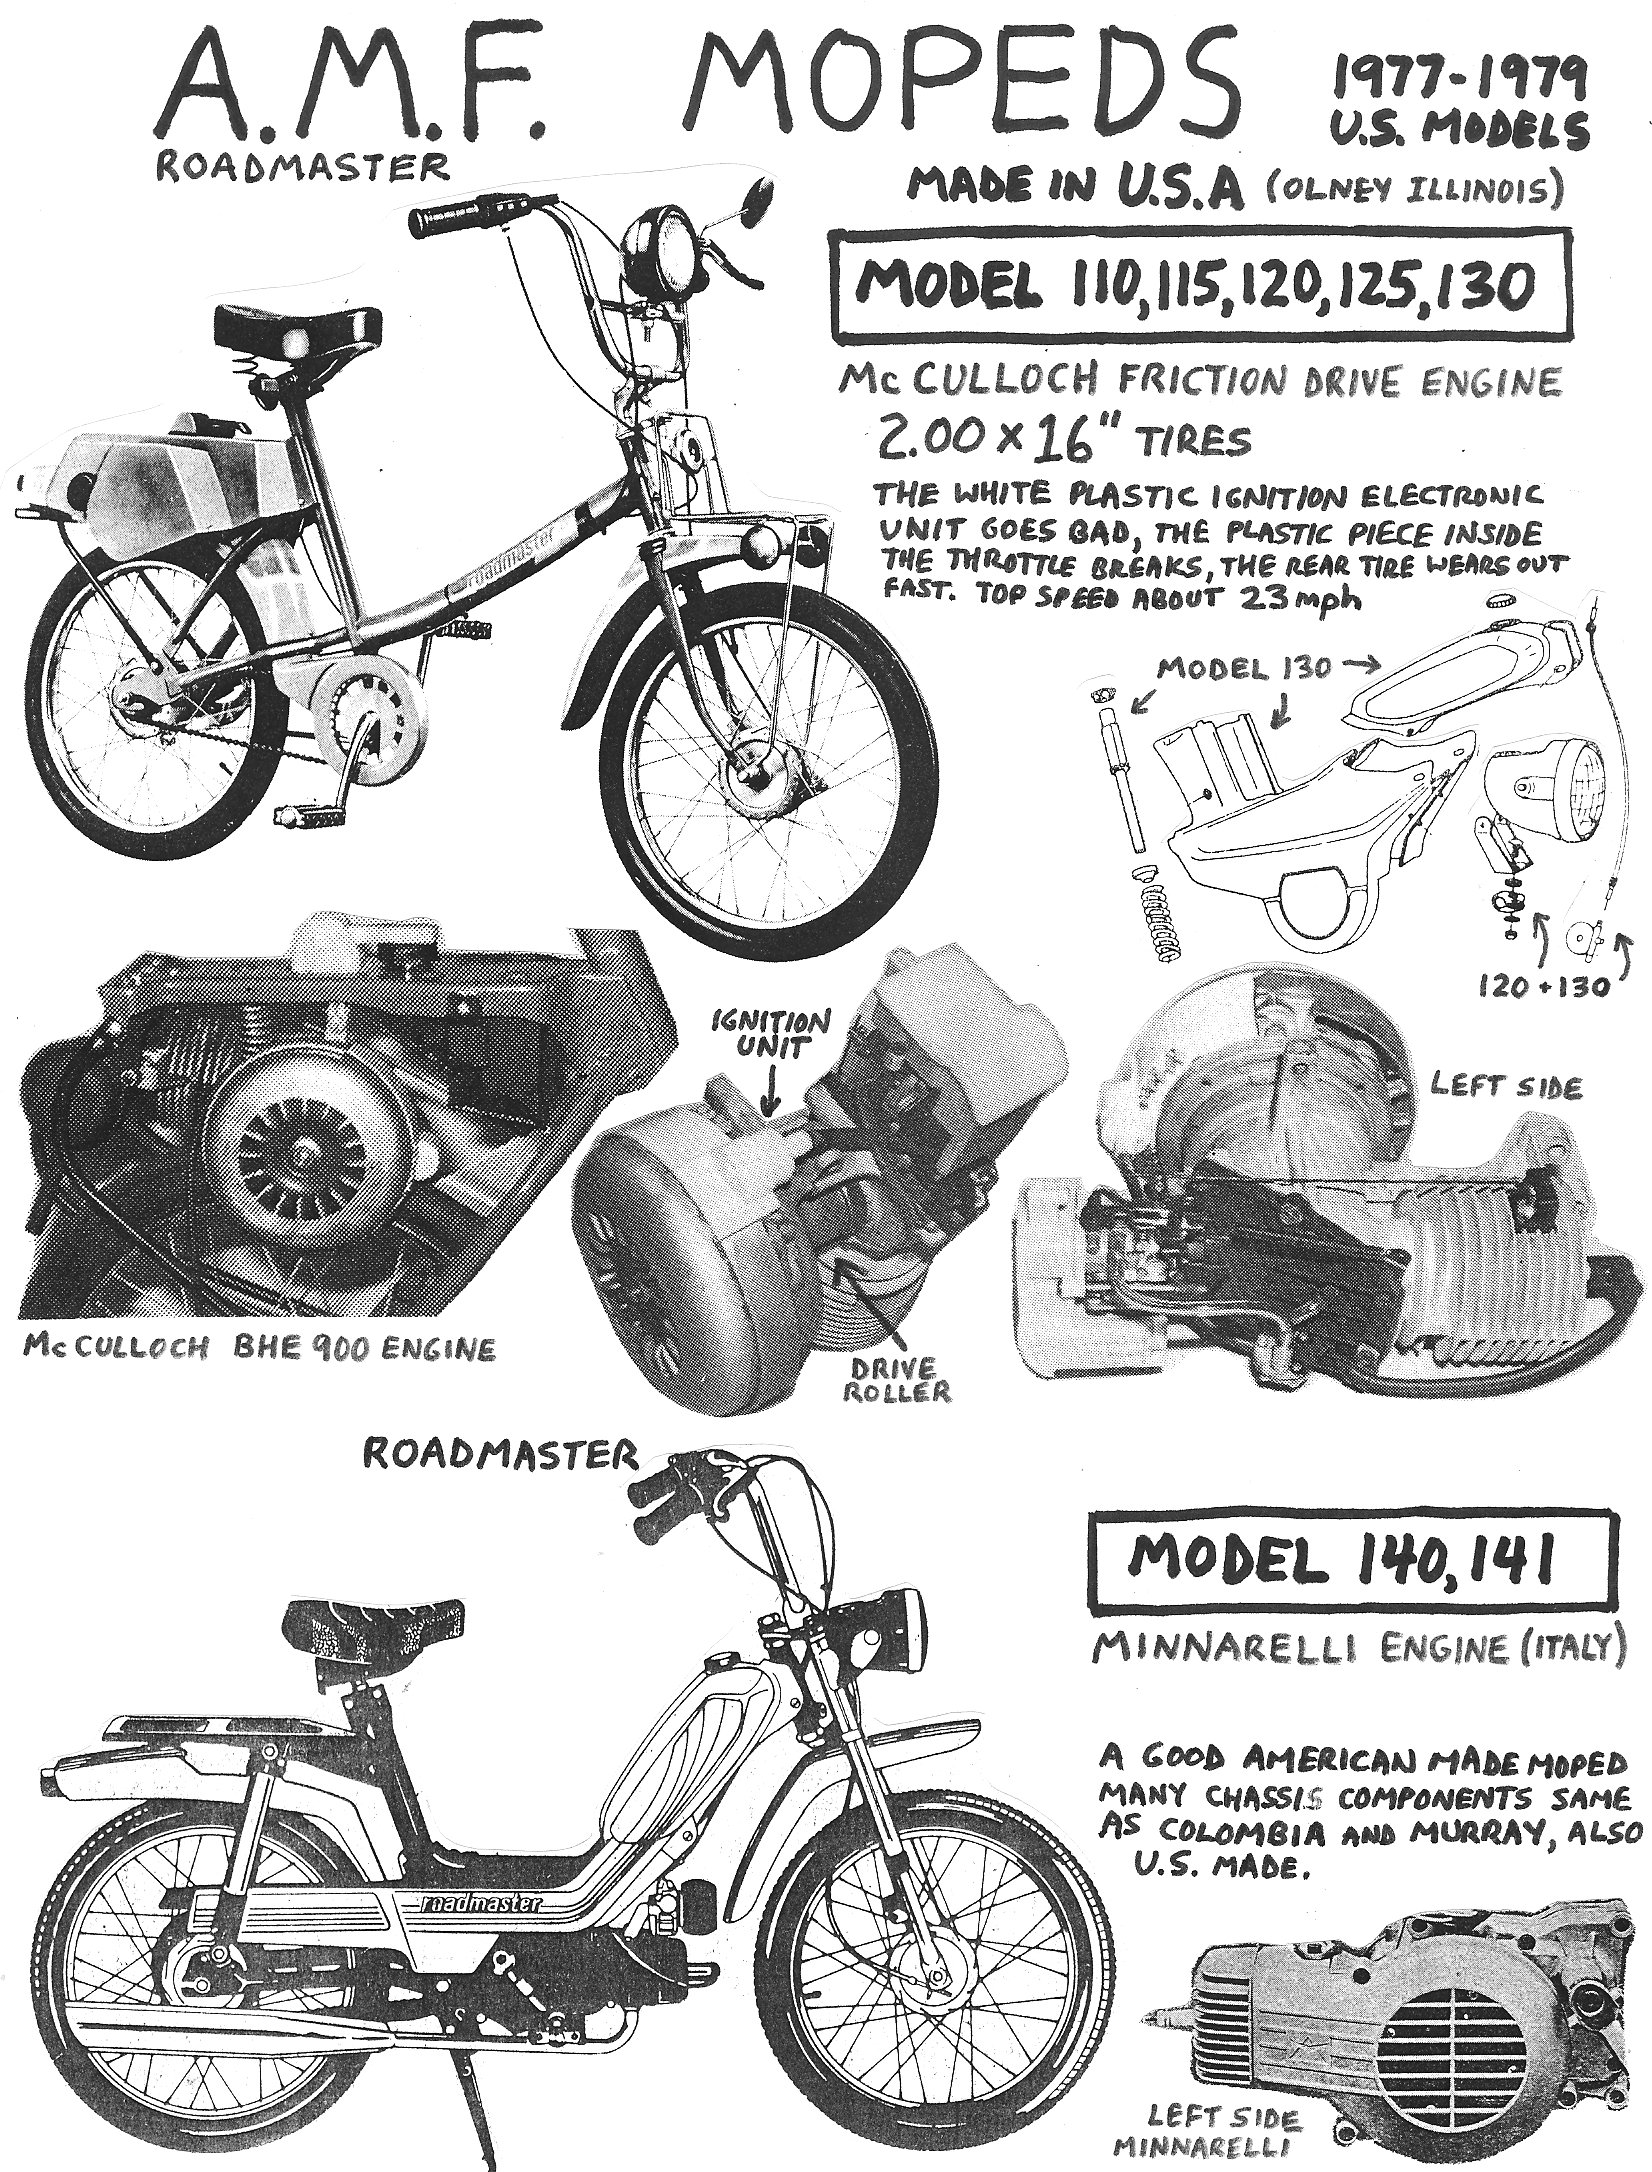 AMF Roadmaster McCulloch BHE 900 Engine Service Manual